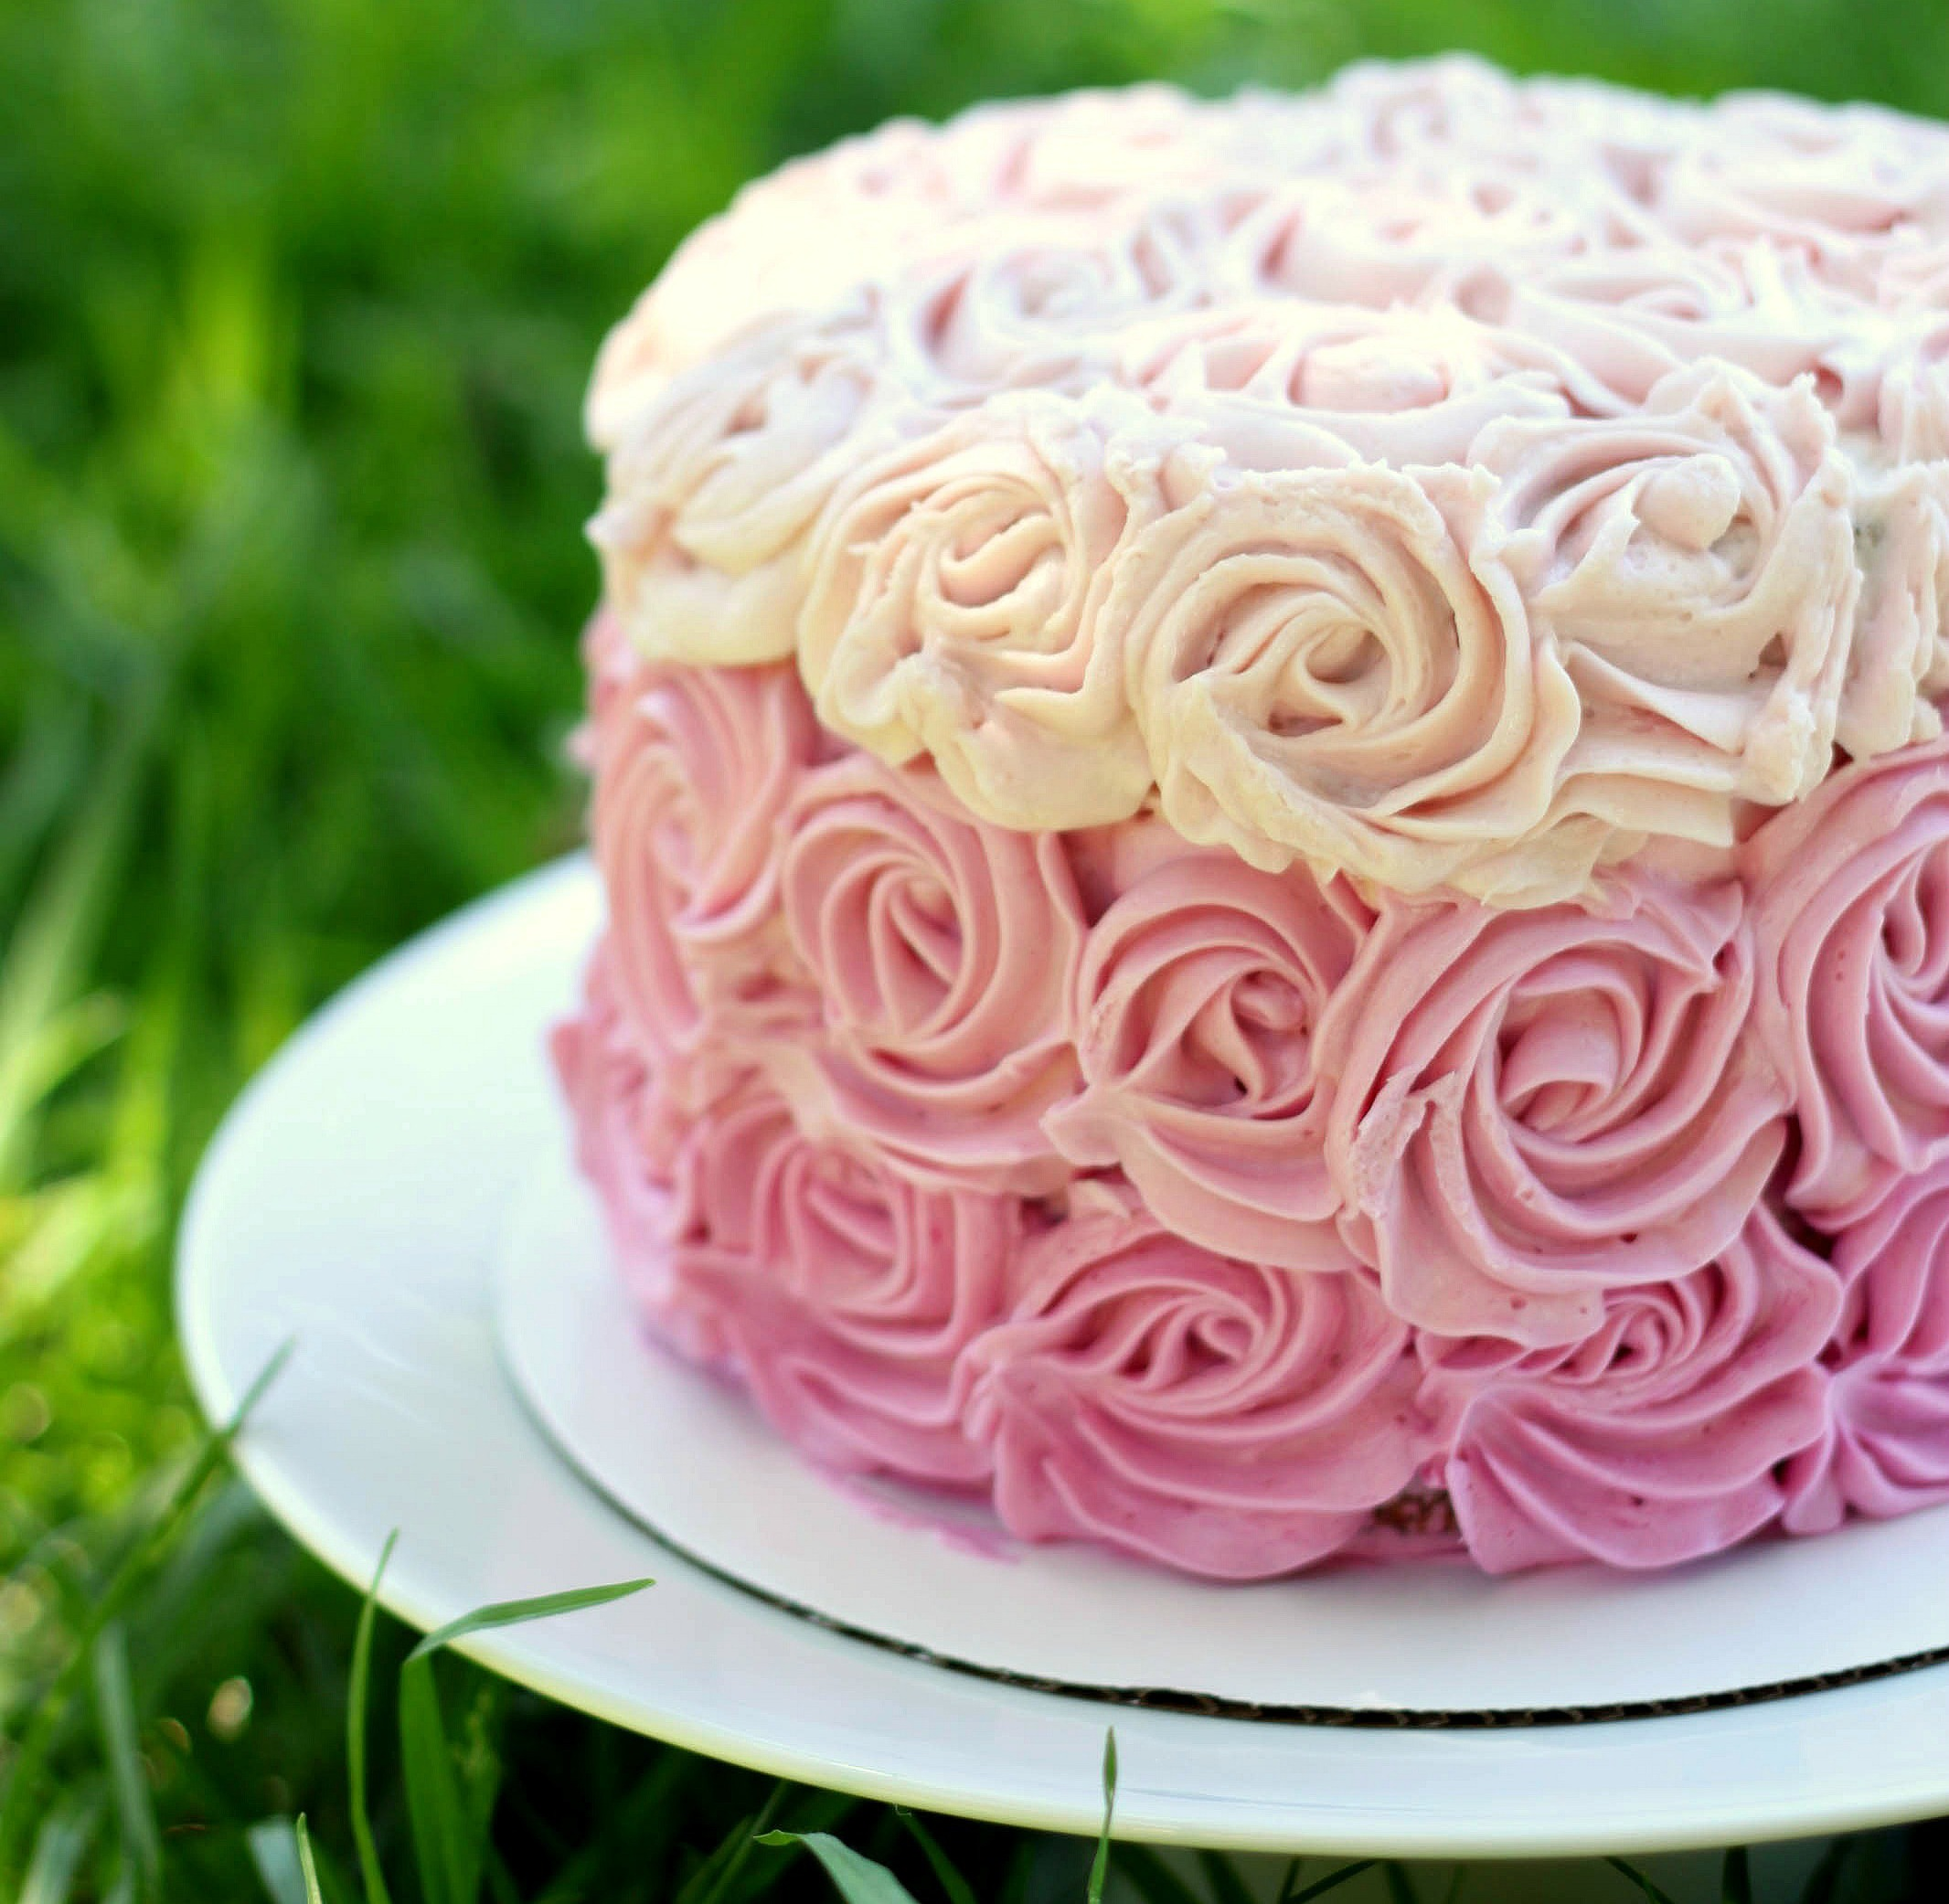 Images For Rose Cake : Ombre rose cake 52 Kitchen Adventures